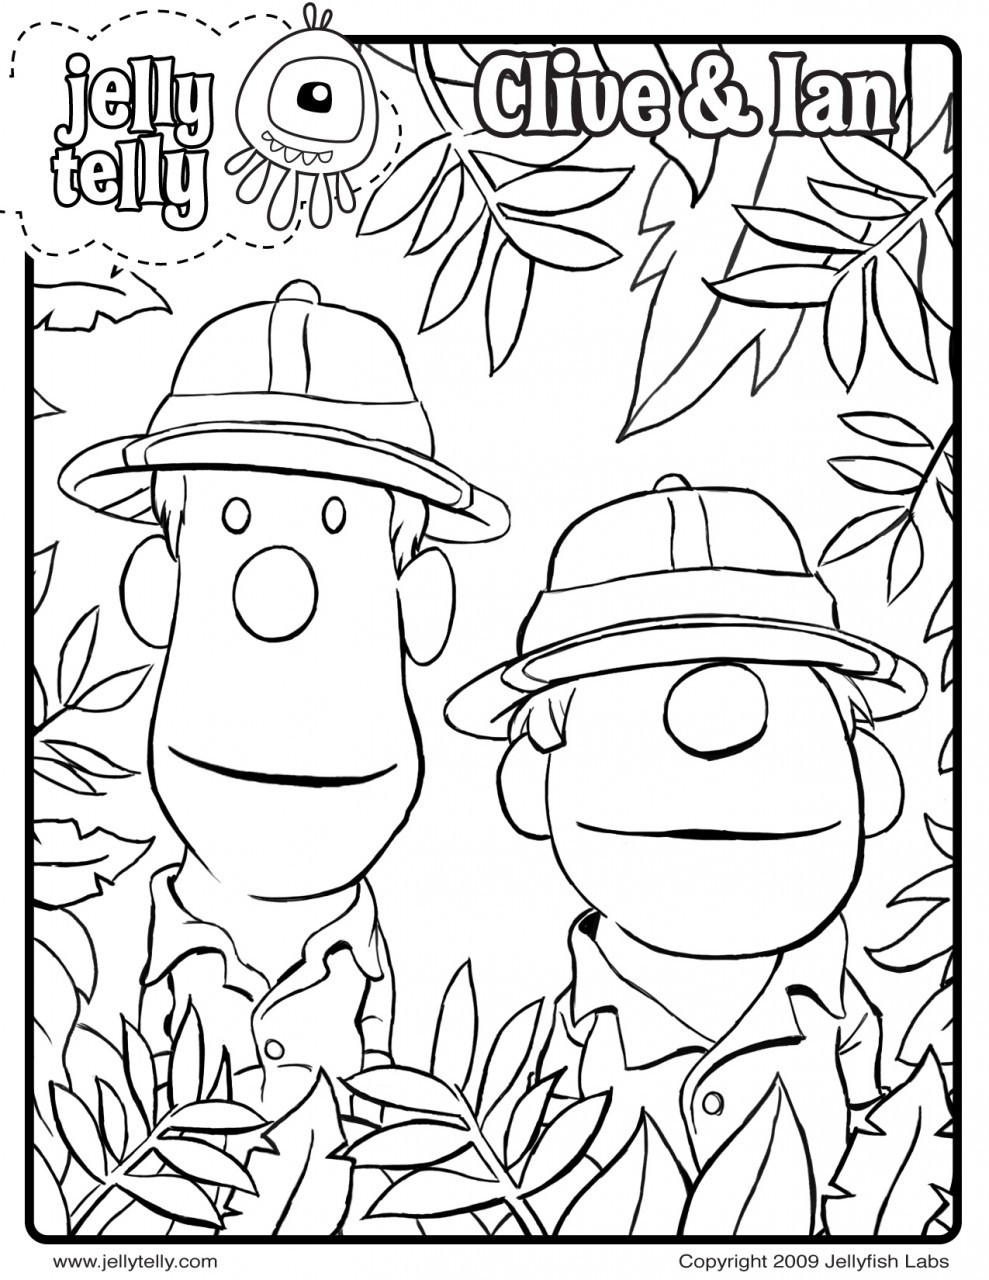 naamans servant girl coloring pages - photo #41